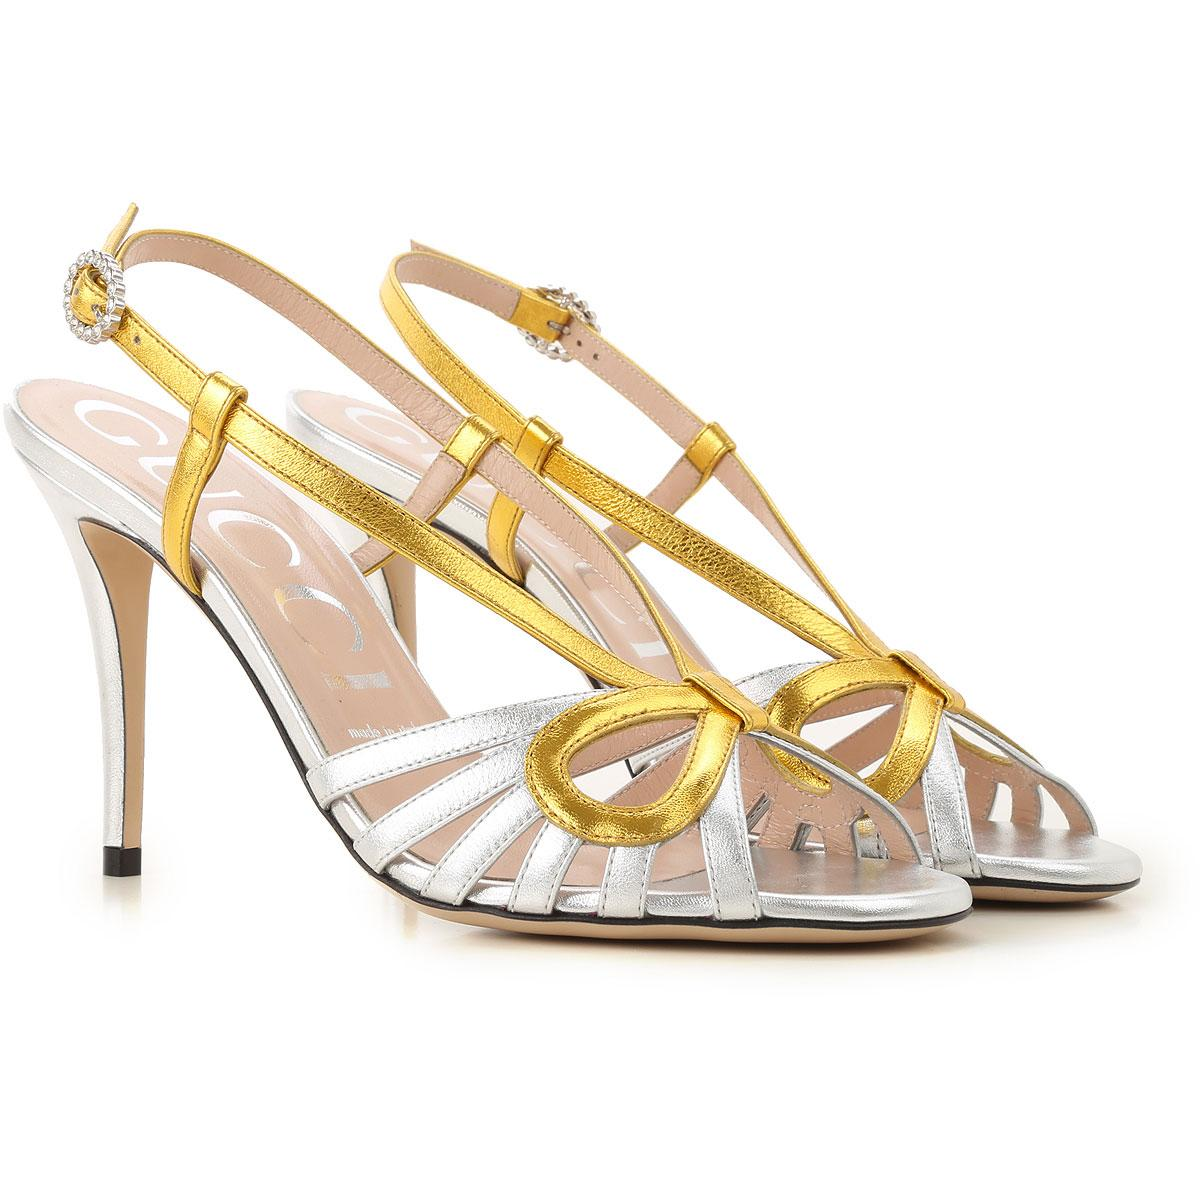 9e3fb6db364 Gucci Shoes For Women in Metallic - Lyst